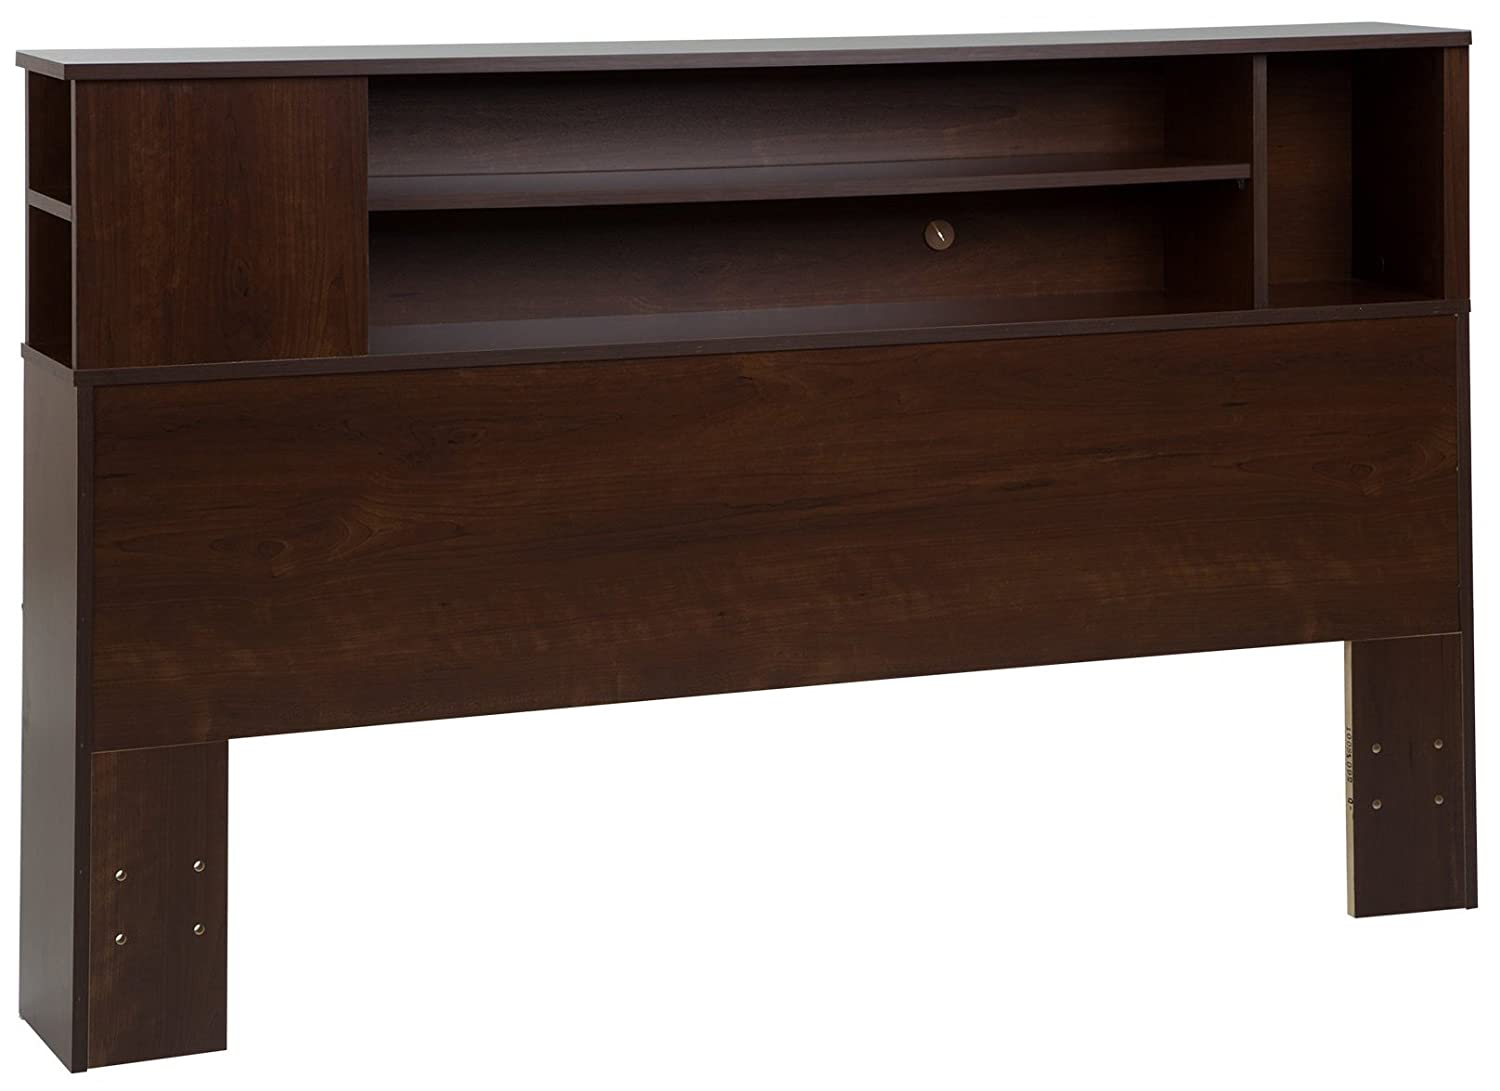 South Shore Vito Bookcase Headboard with Storage, Full/Queen 54/60-inch, Sumptuous Cherry